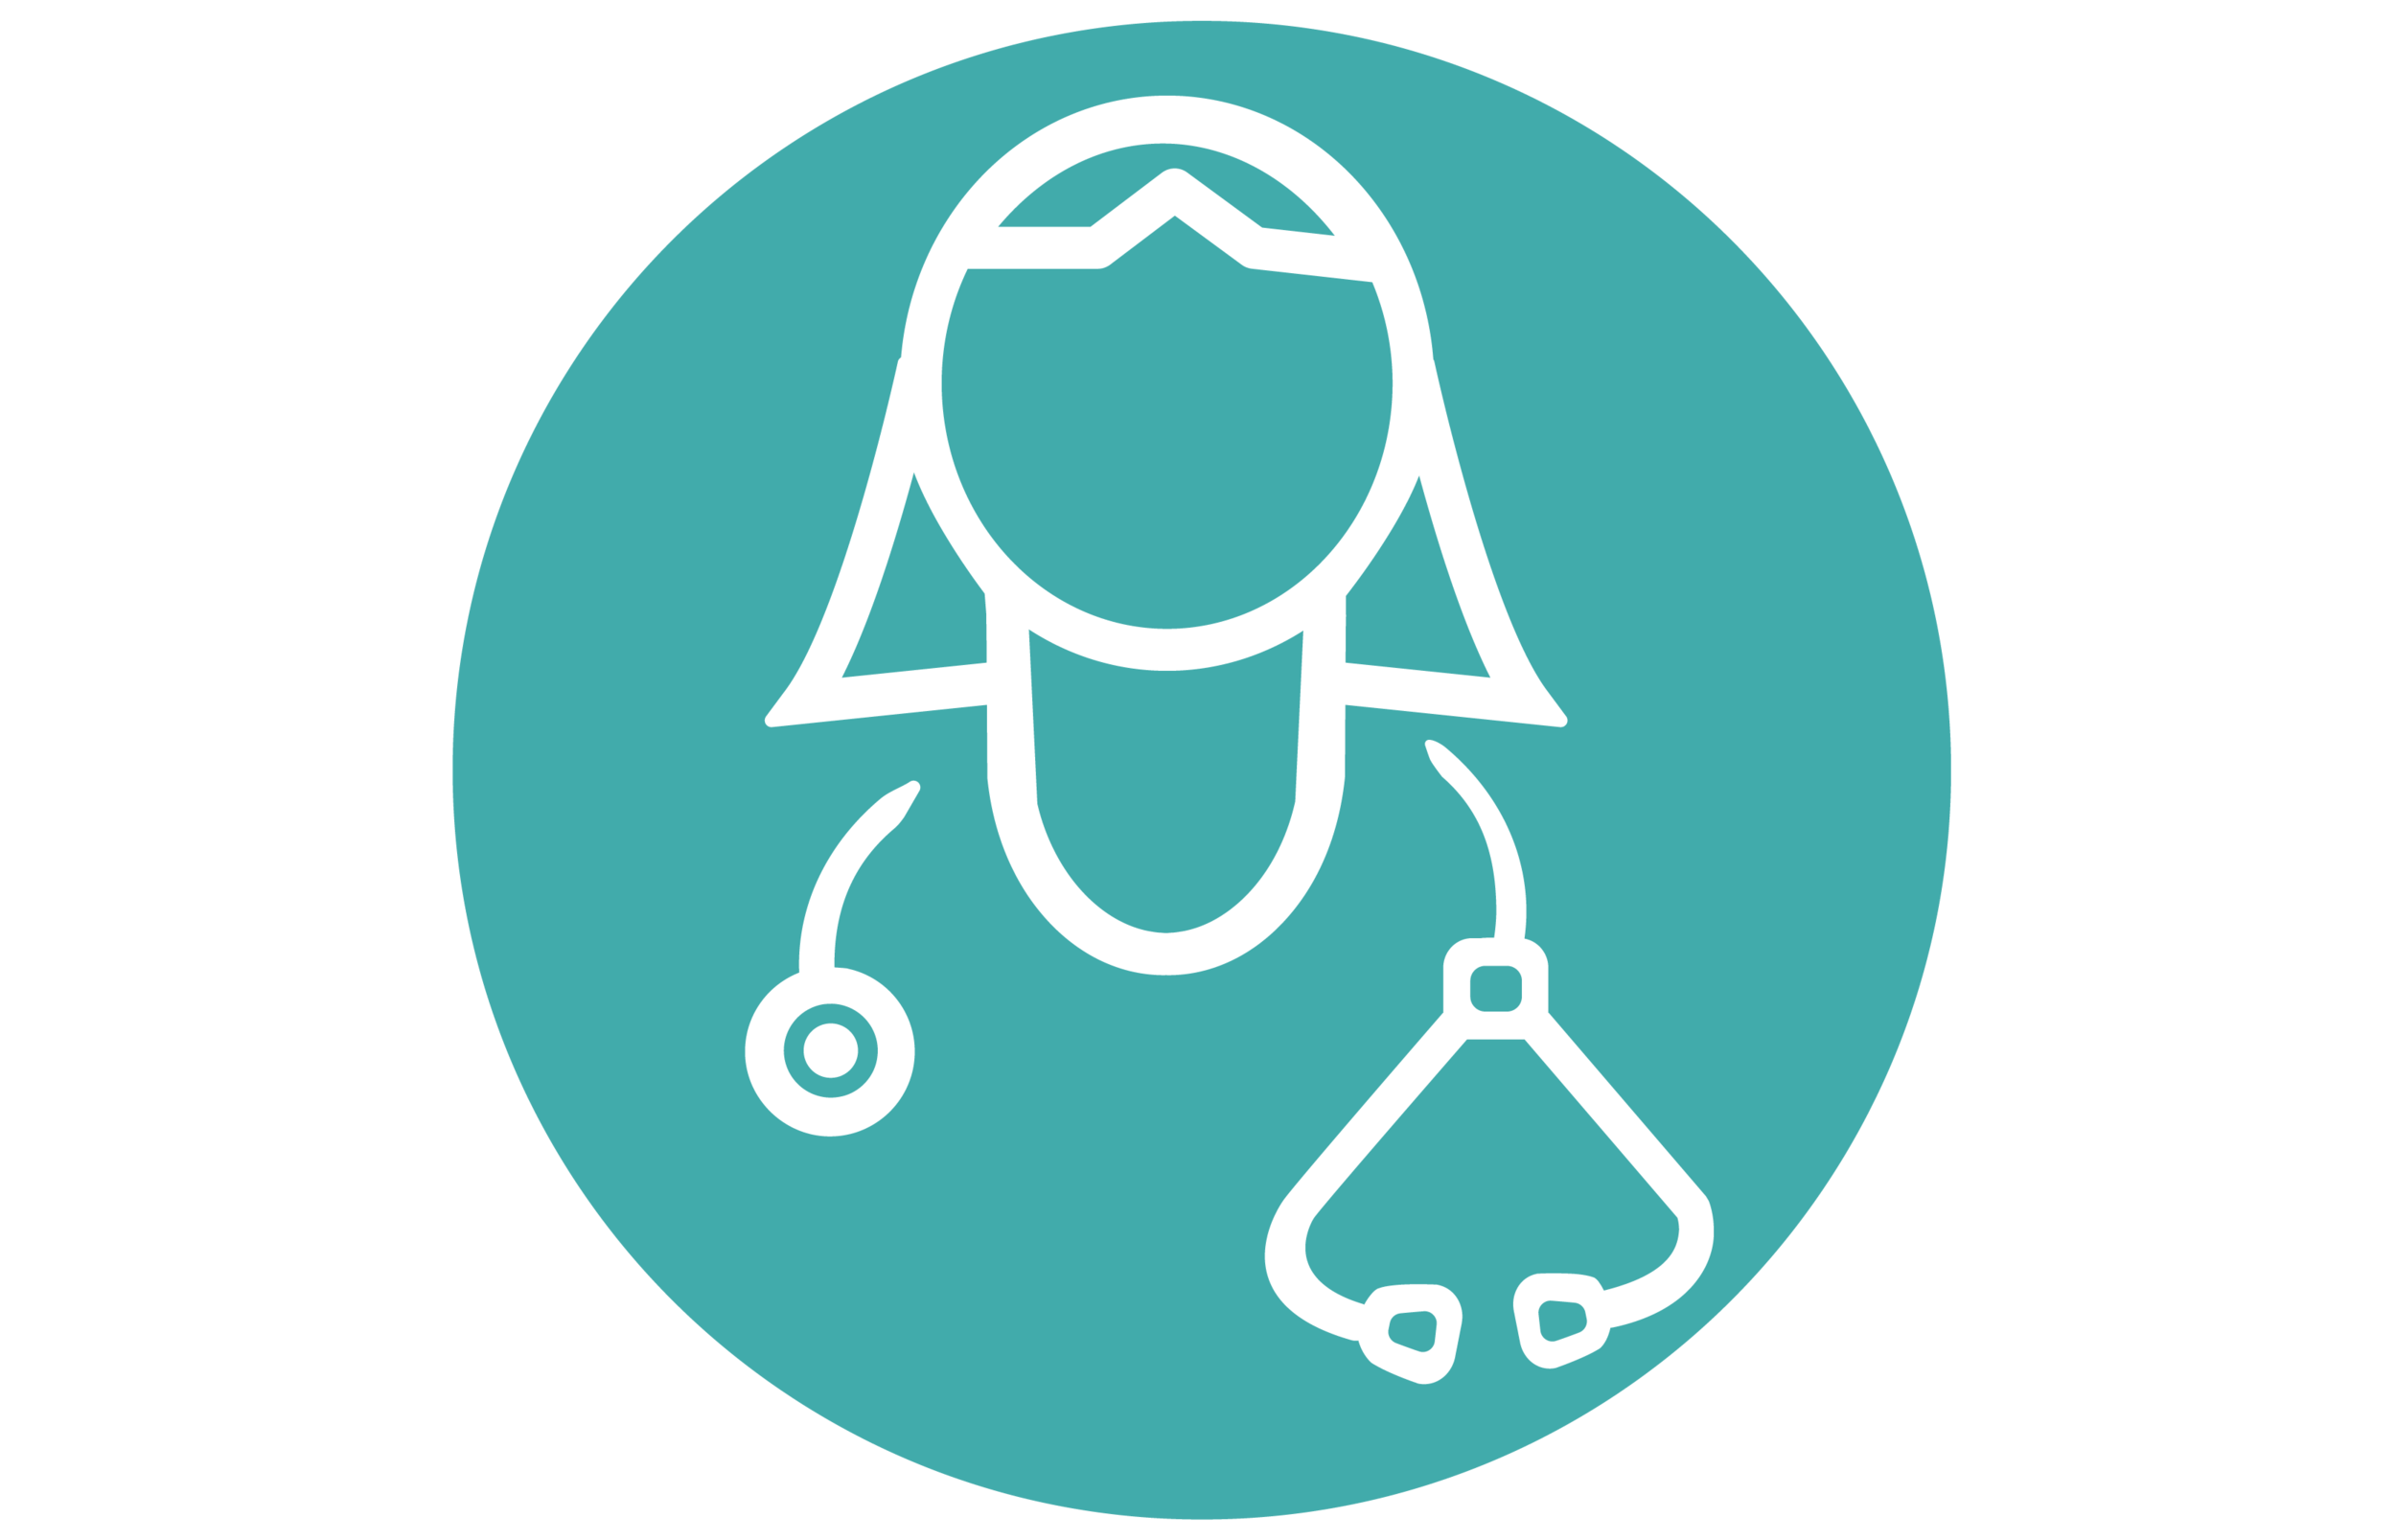 graphic of a doctor or primary care provider